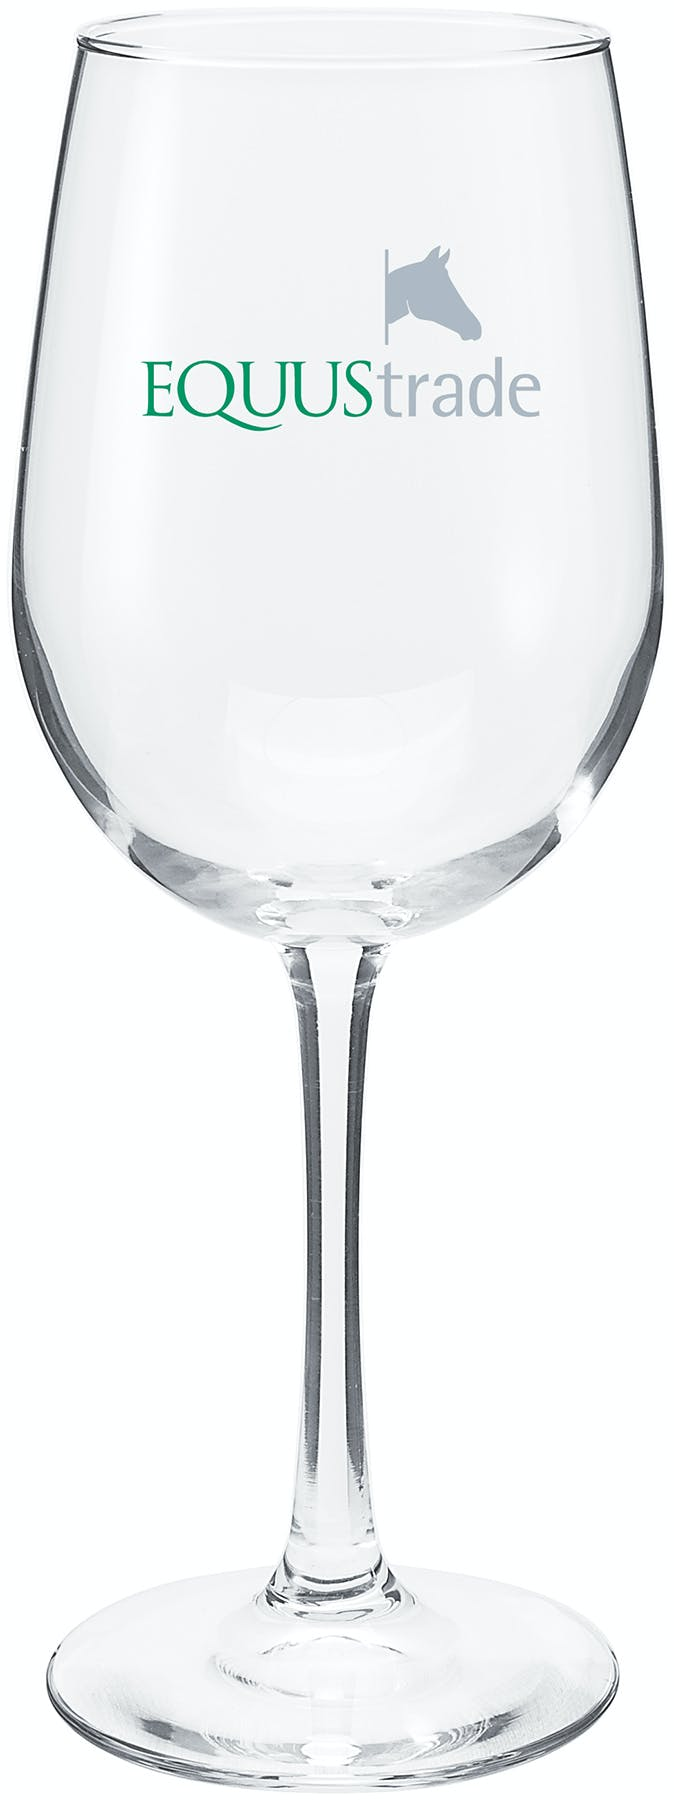 16 Oz. Tall Wine Glass (Item # YFFKL-DTNTG) Wine glass sold by InkEasy